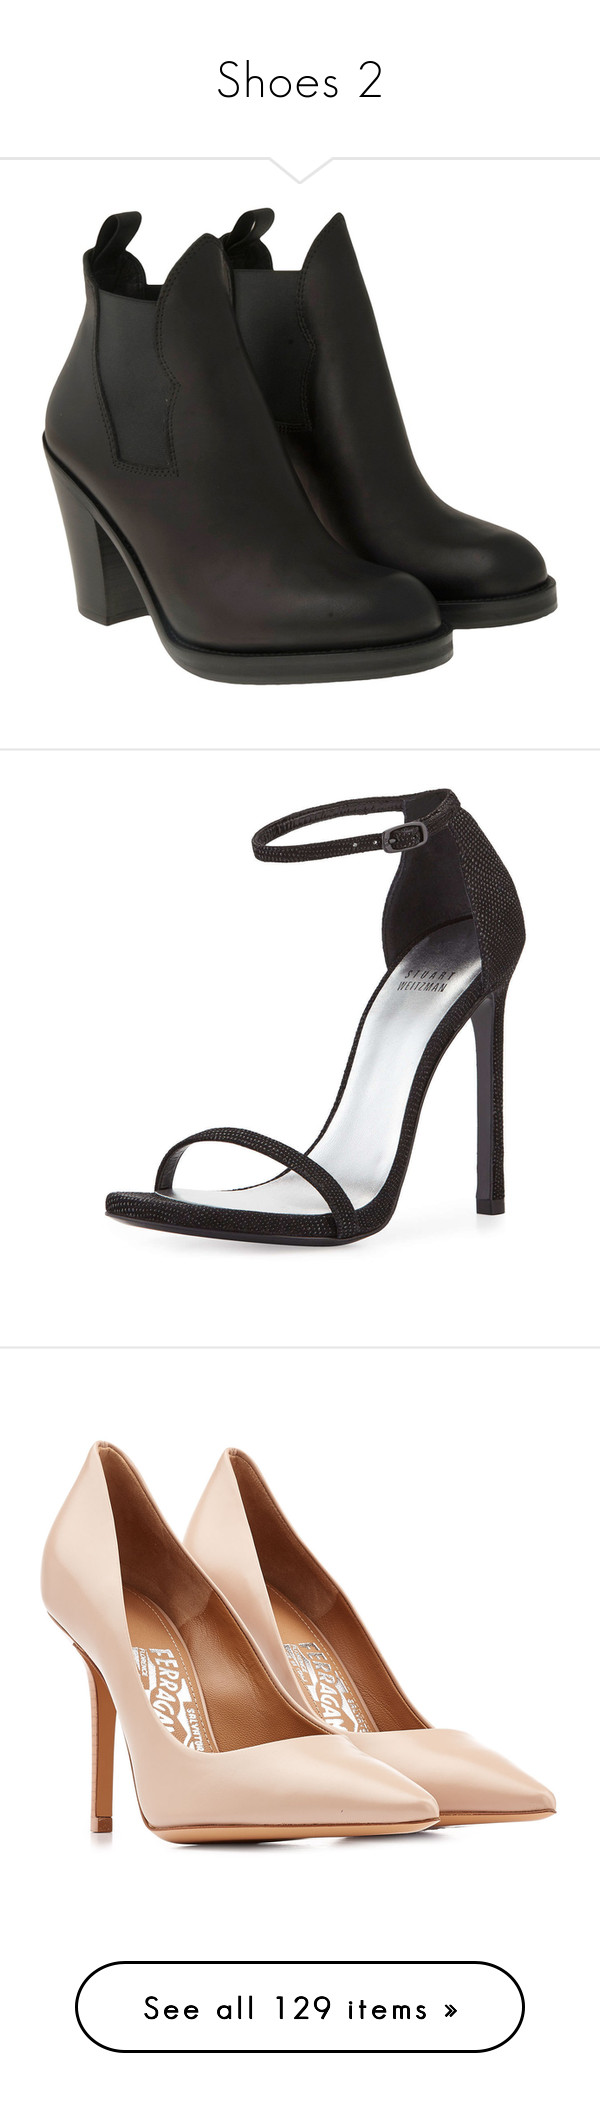 """""""Shoes 2"""" by unstable-viper on Polyvore featuring shoes, boots, ankle booties, footwear, ankle boots, high heel booties, leather ankle boots, high heel bootie, real leather boots et sandals"""